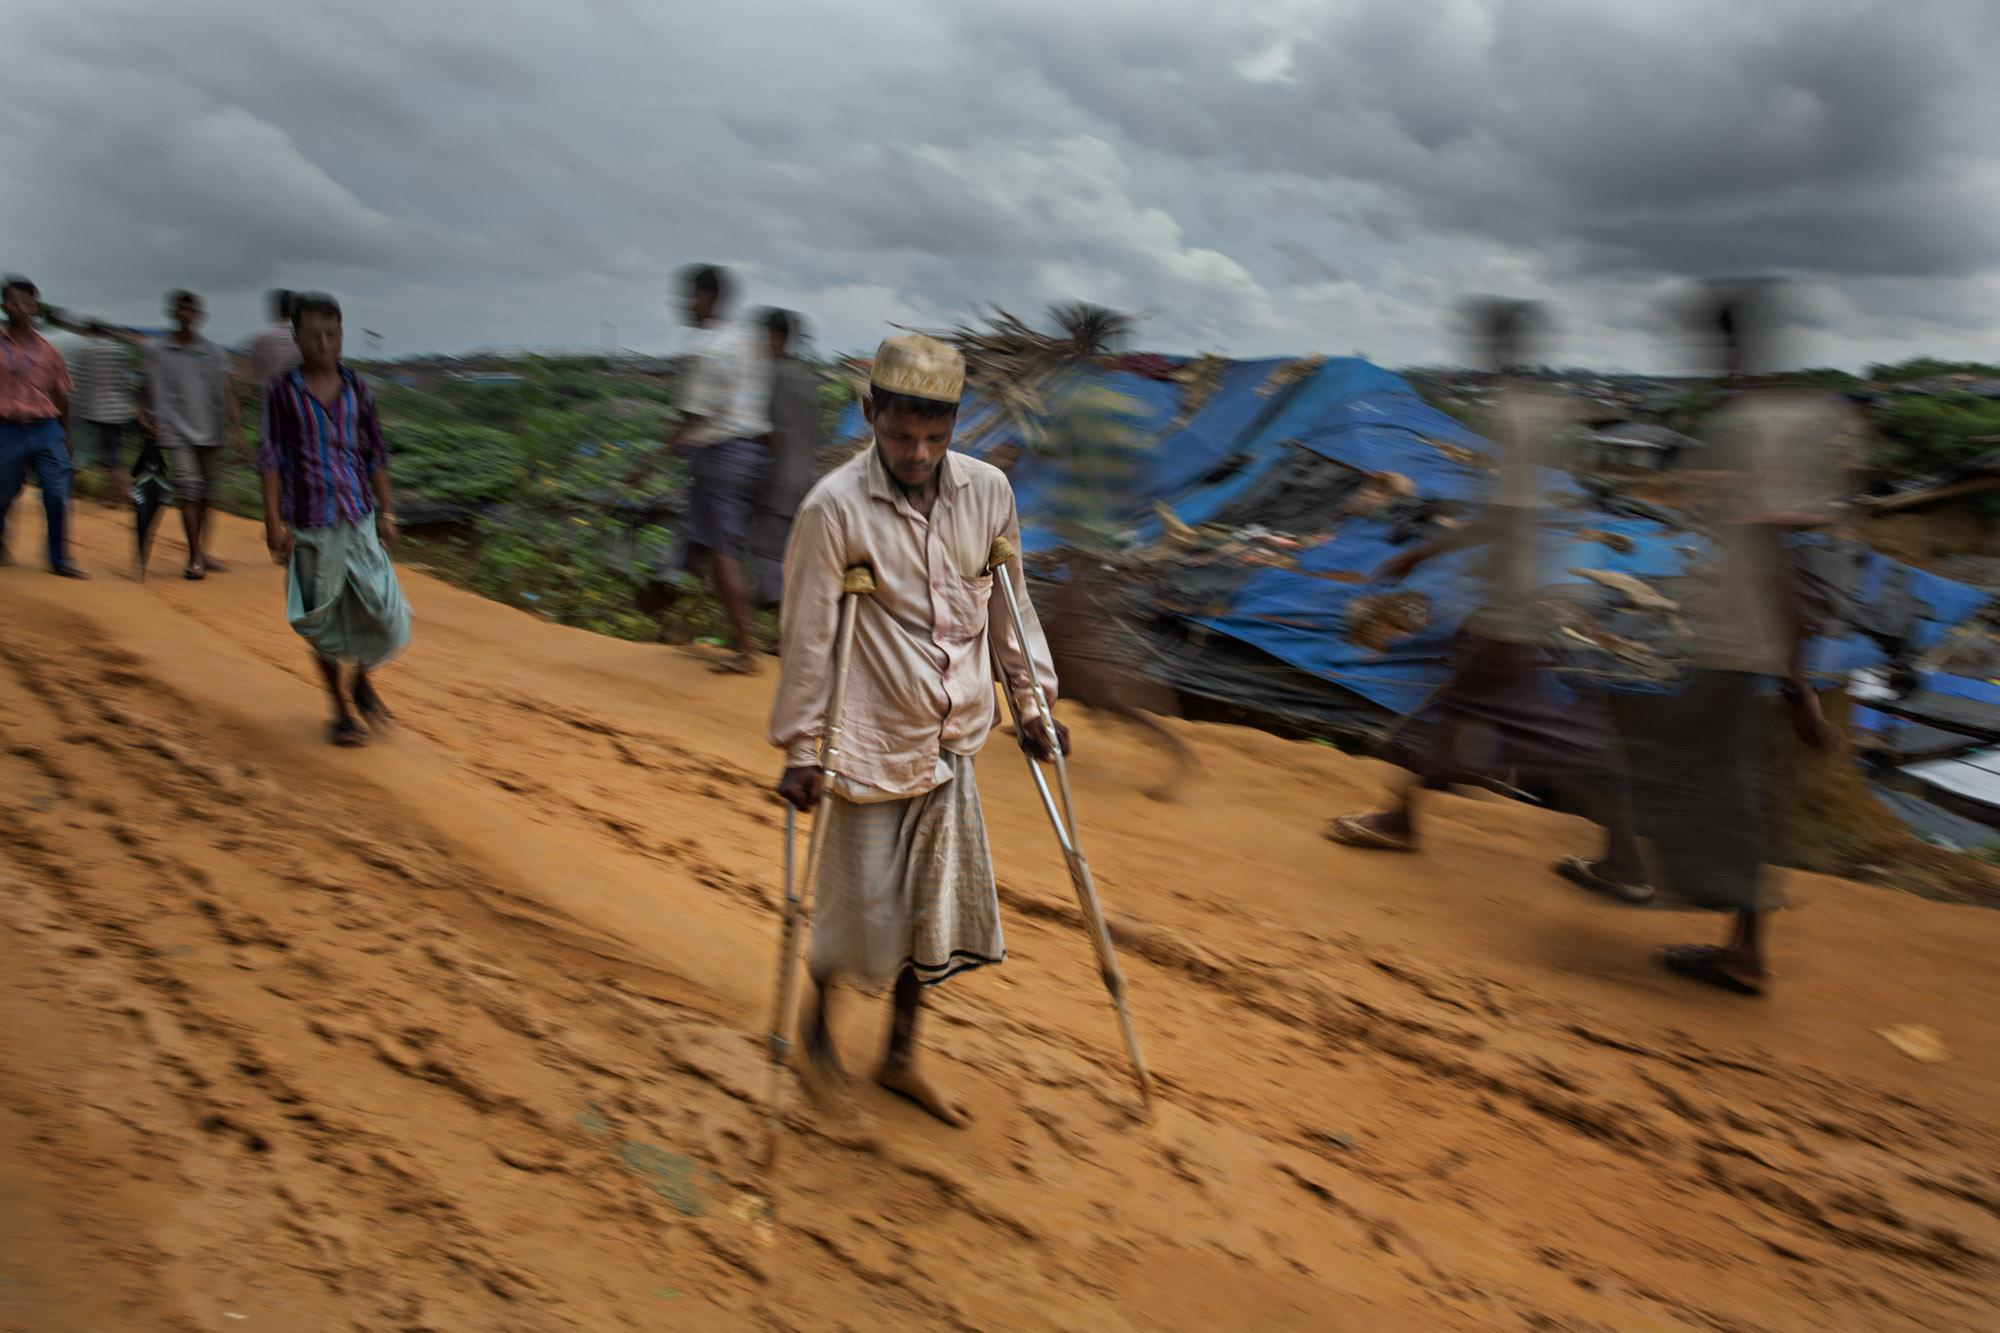 A Rohingya man makes his way along a muddy road in a camp outside of Cox's Bazar, Bangladesh. Hundreds of thousands of refugees, heavy rains and many passing vehicles turned the roads through the camps into treacherous walkways.